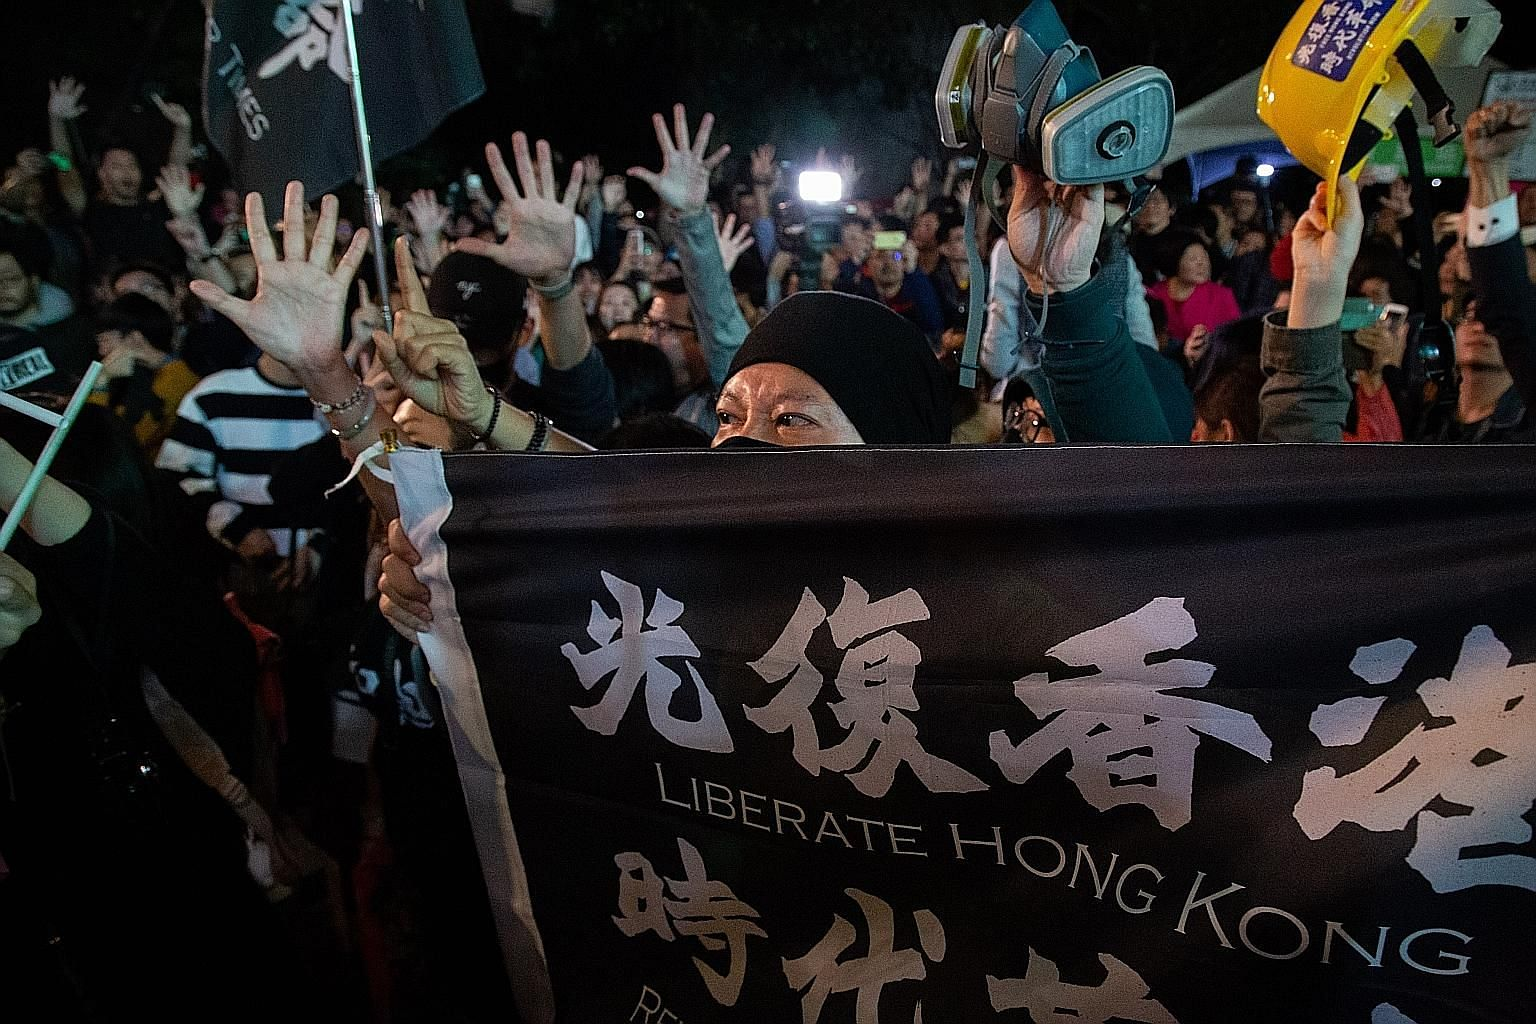 An attendee holding a flag in support of Hong Kong at a rally of Taiwan President Tsai Ing-wen's Democratic Progressive Party in Taipei on Saturday. PHOTO: BLOOMBERG